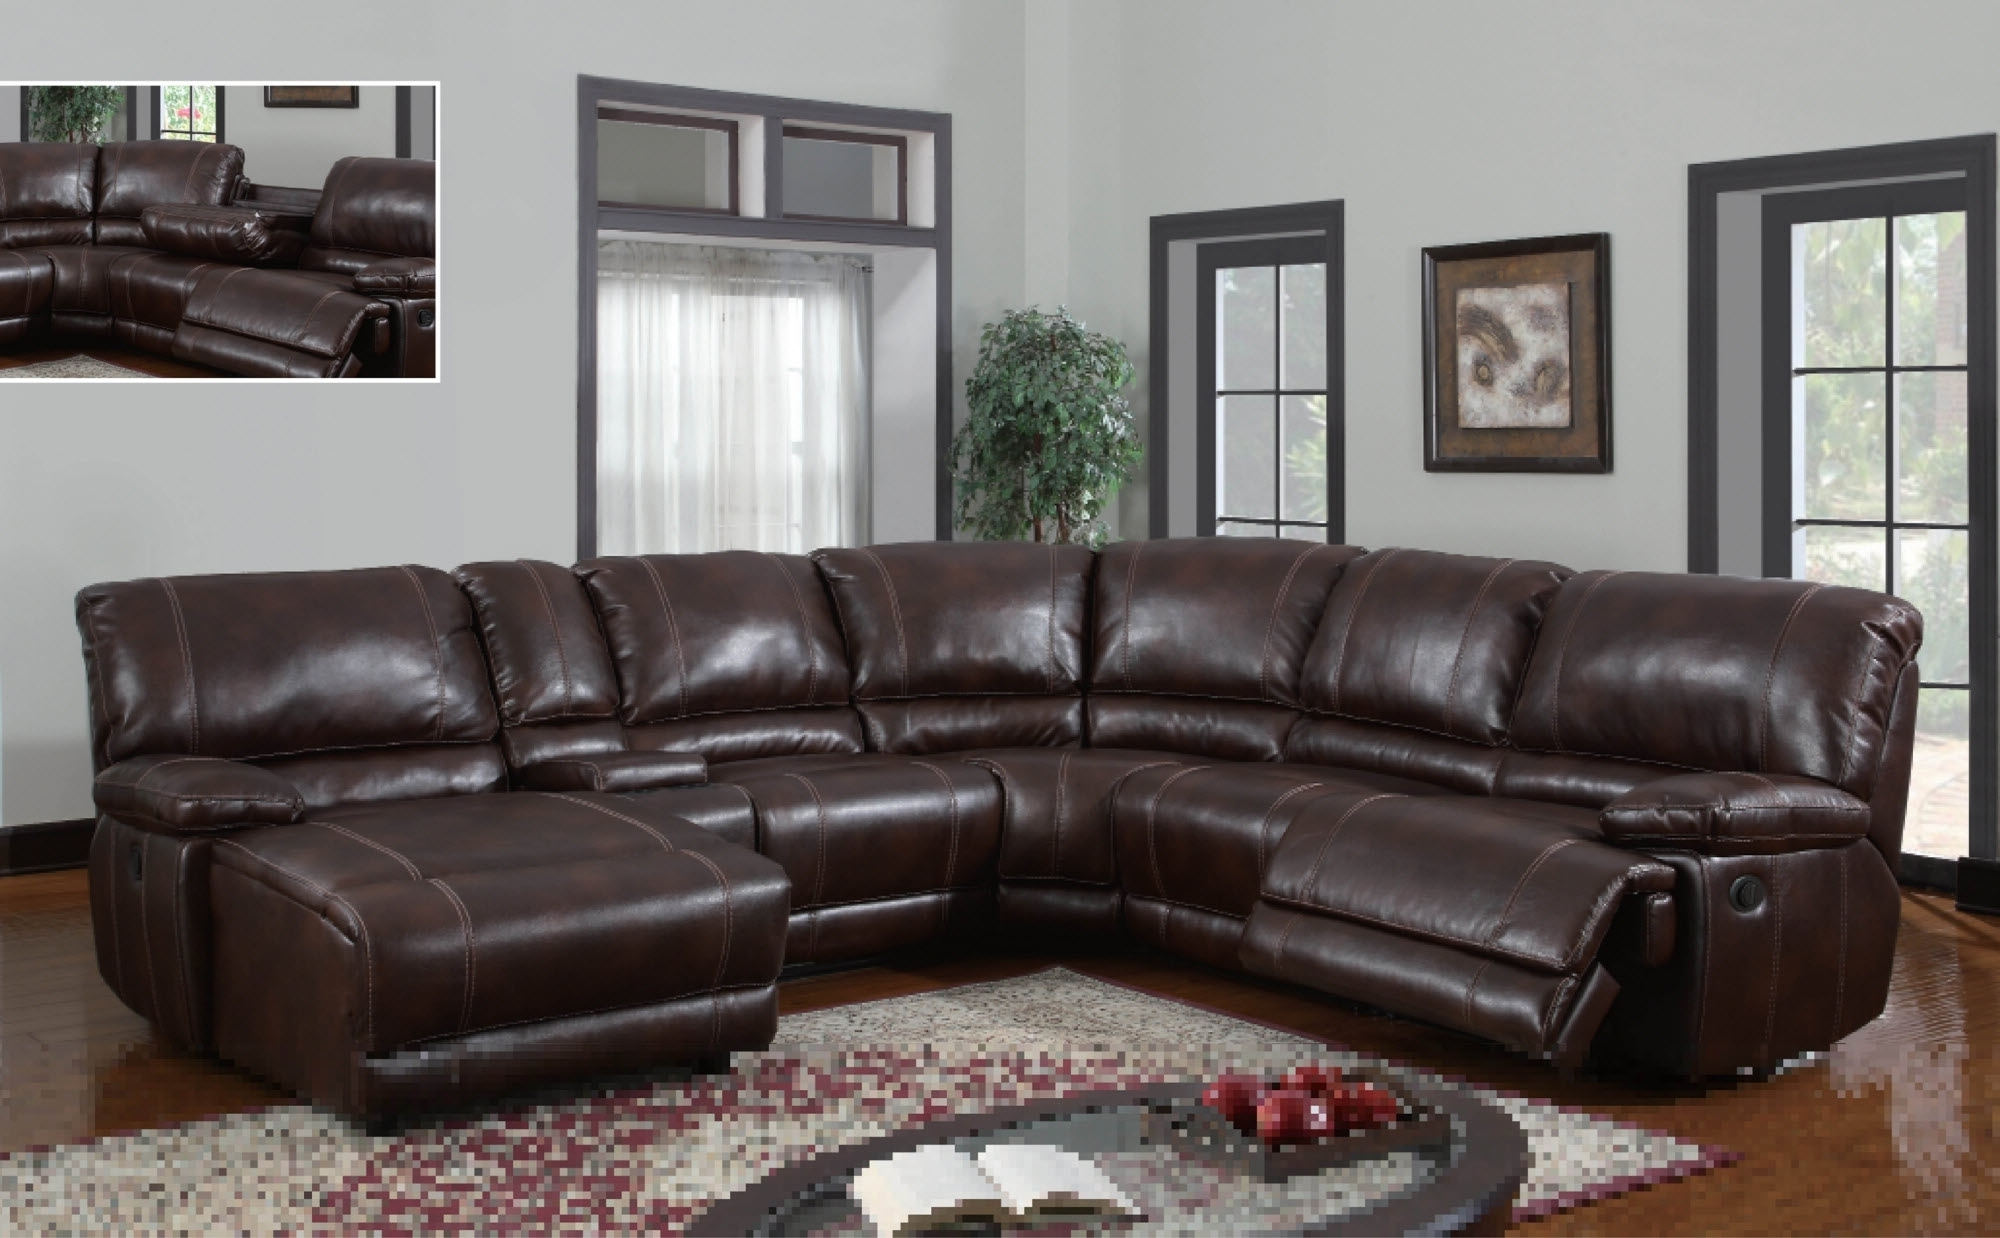 Best And Newest Individual Piece Sectional Sofas Inside Collection Individual Piece Sectional Sofas – Buildsimplehome (View 11 of 20)